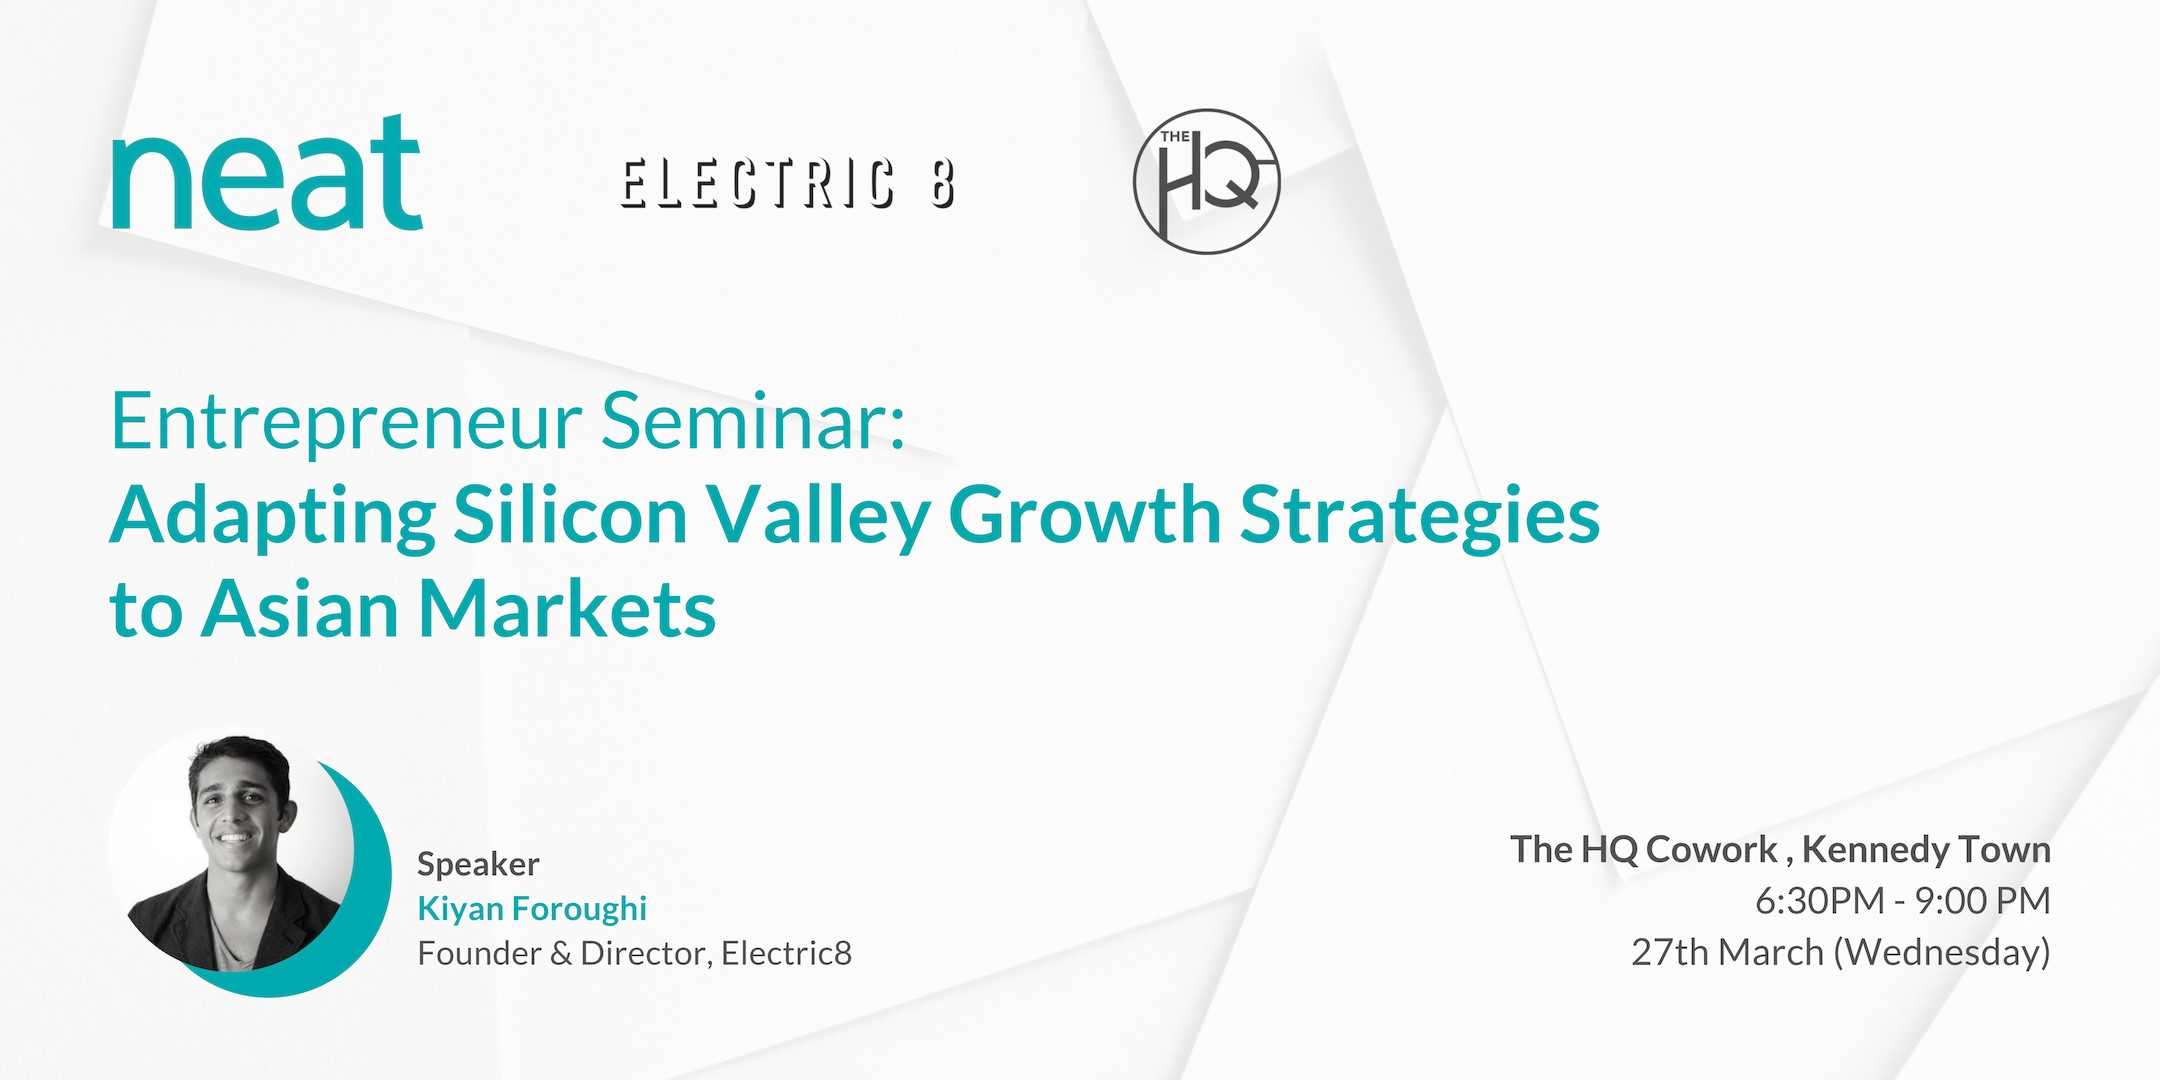 Entrepreneur Seminar: adapting silicon valley growth strategies to asian markets - by neat x Electric8 x theHQWed 27//03/2019 6:30pm - 9:00pm